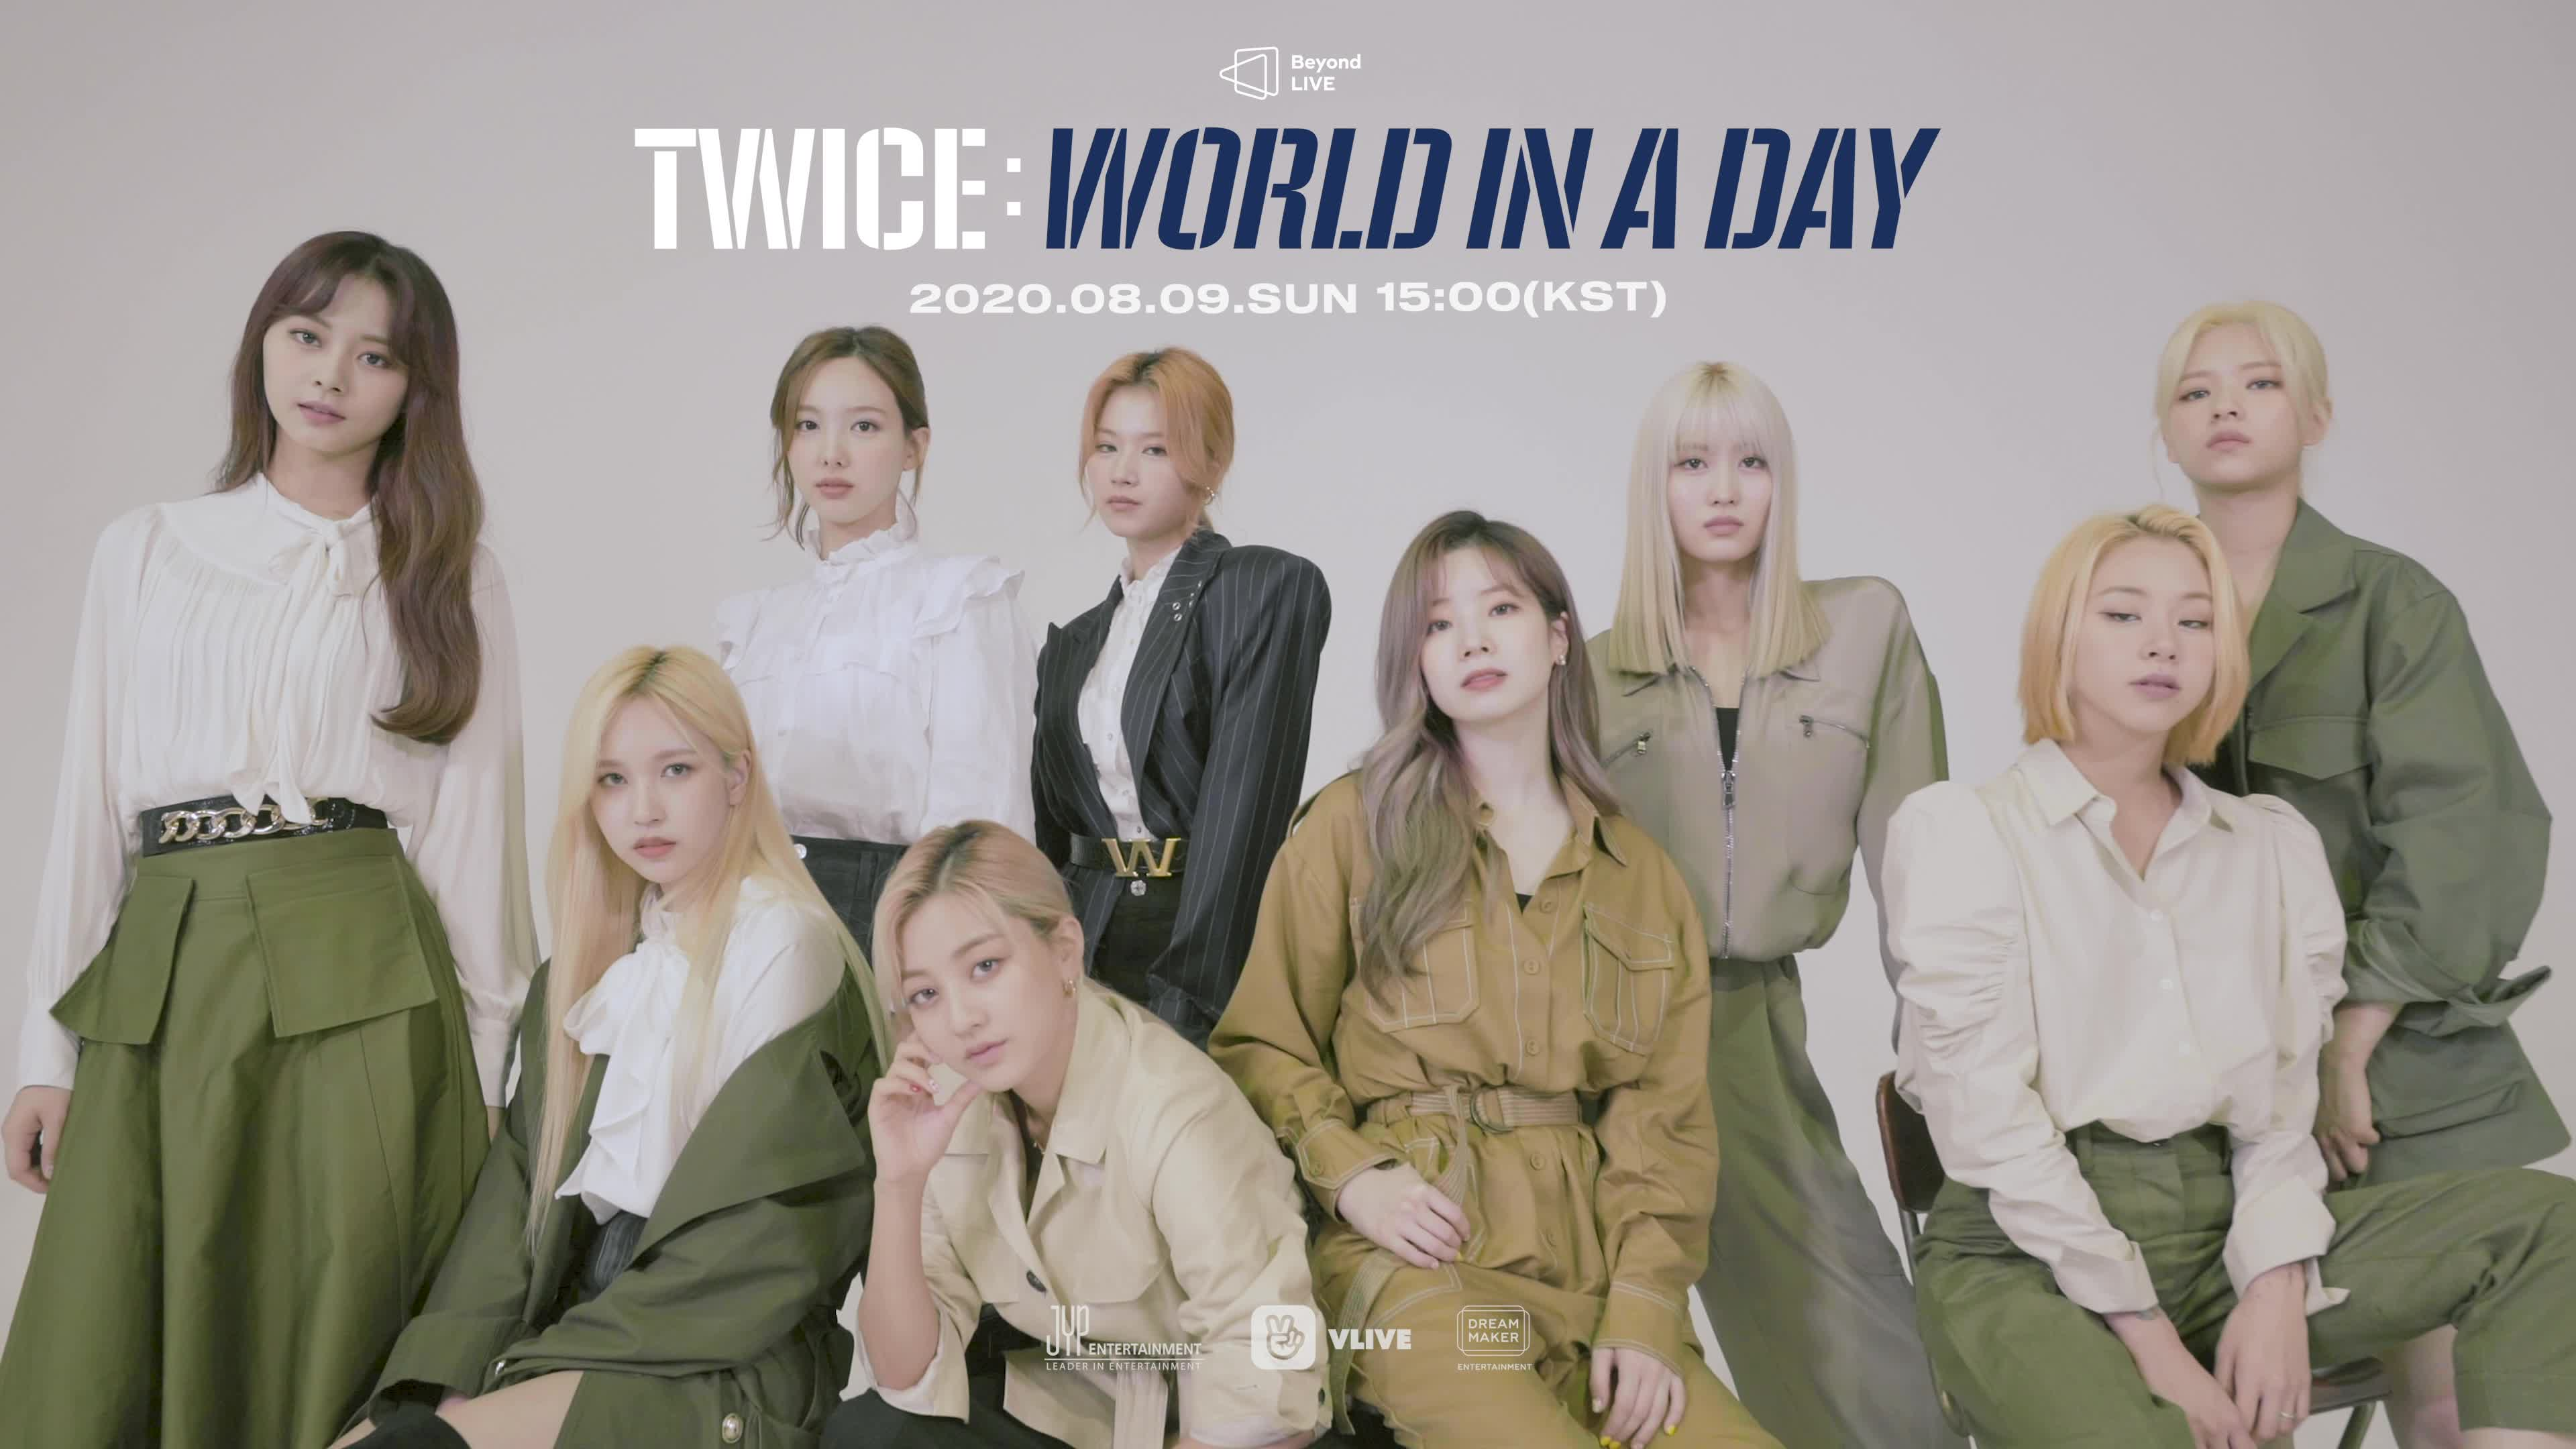 [Beyond LIVE - TWICE : World in A Day] Moving Poster - TWICE